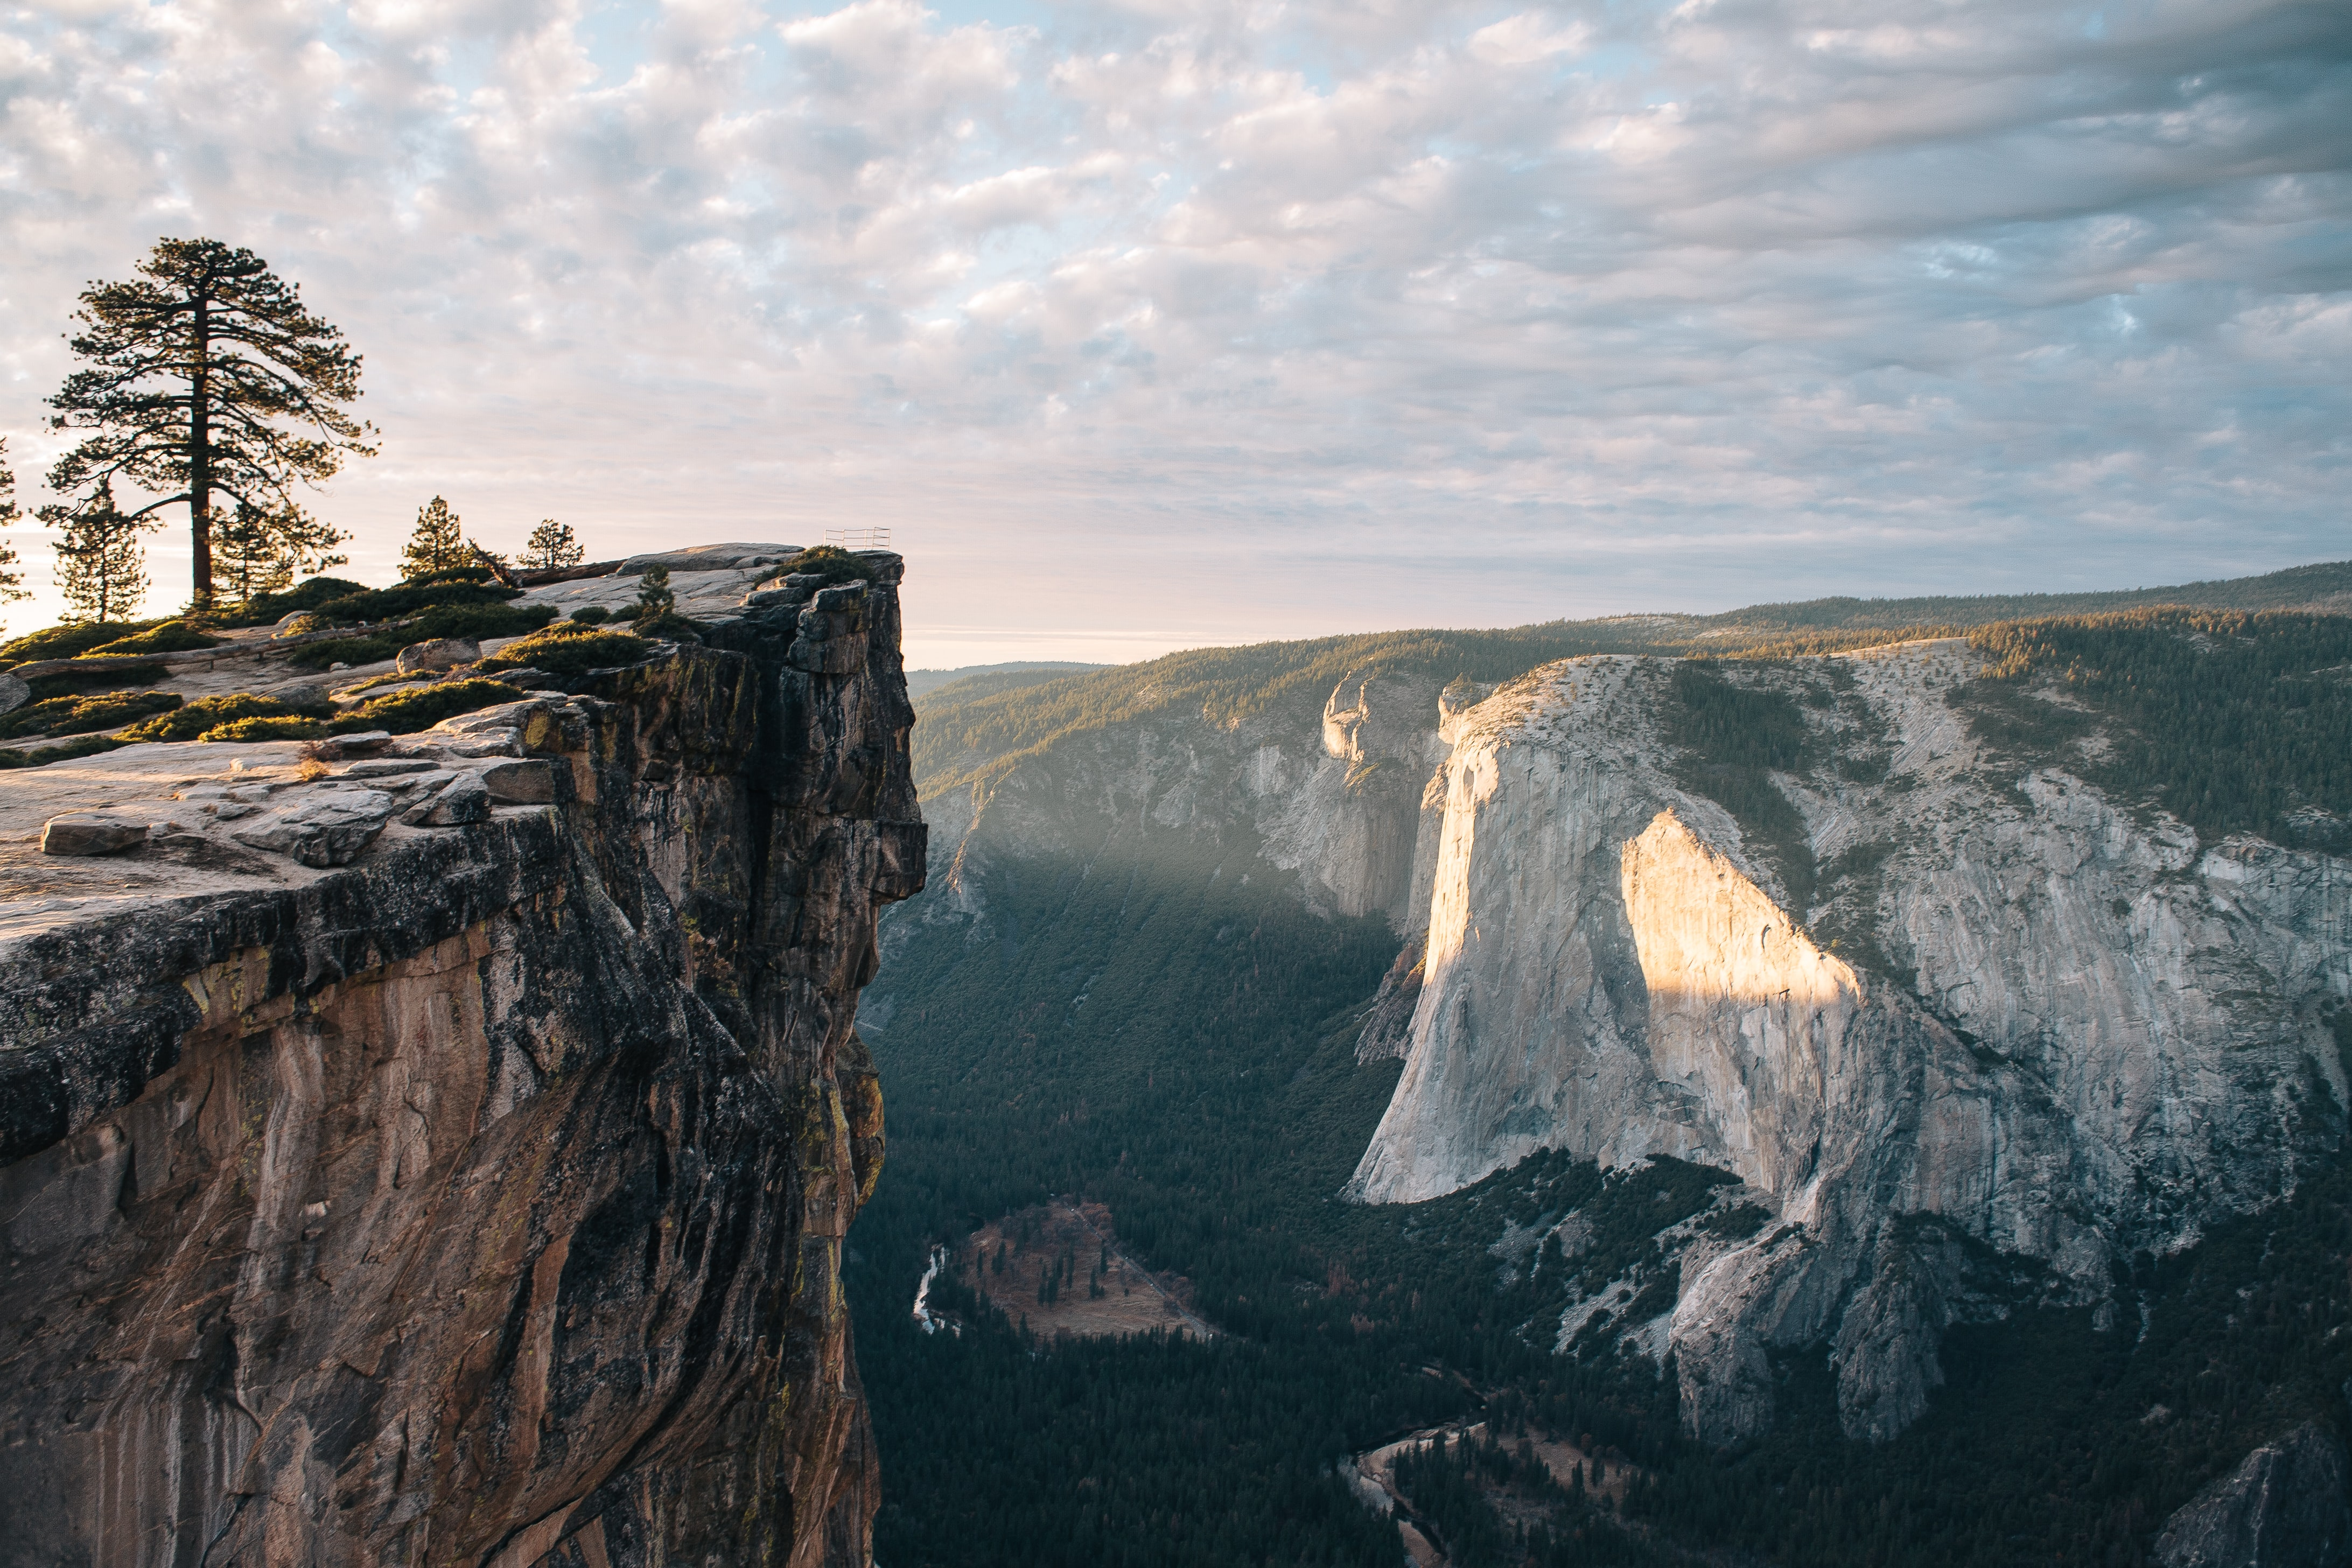 cliff overlooking mountain during daytime